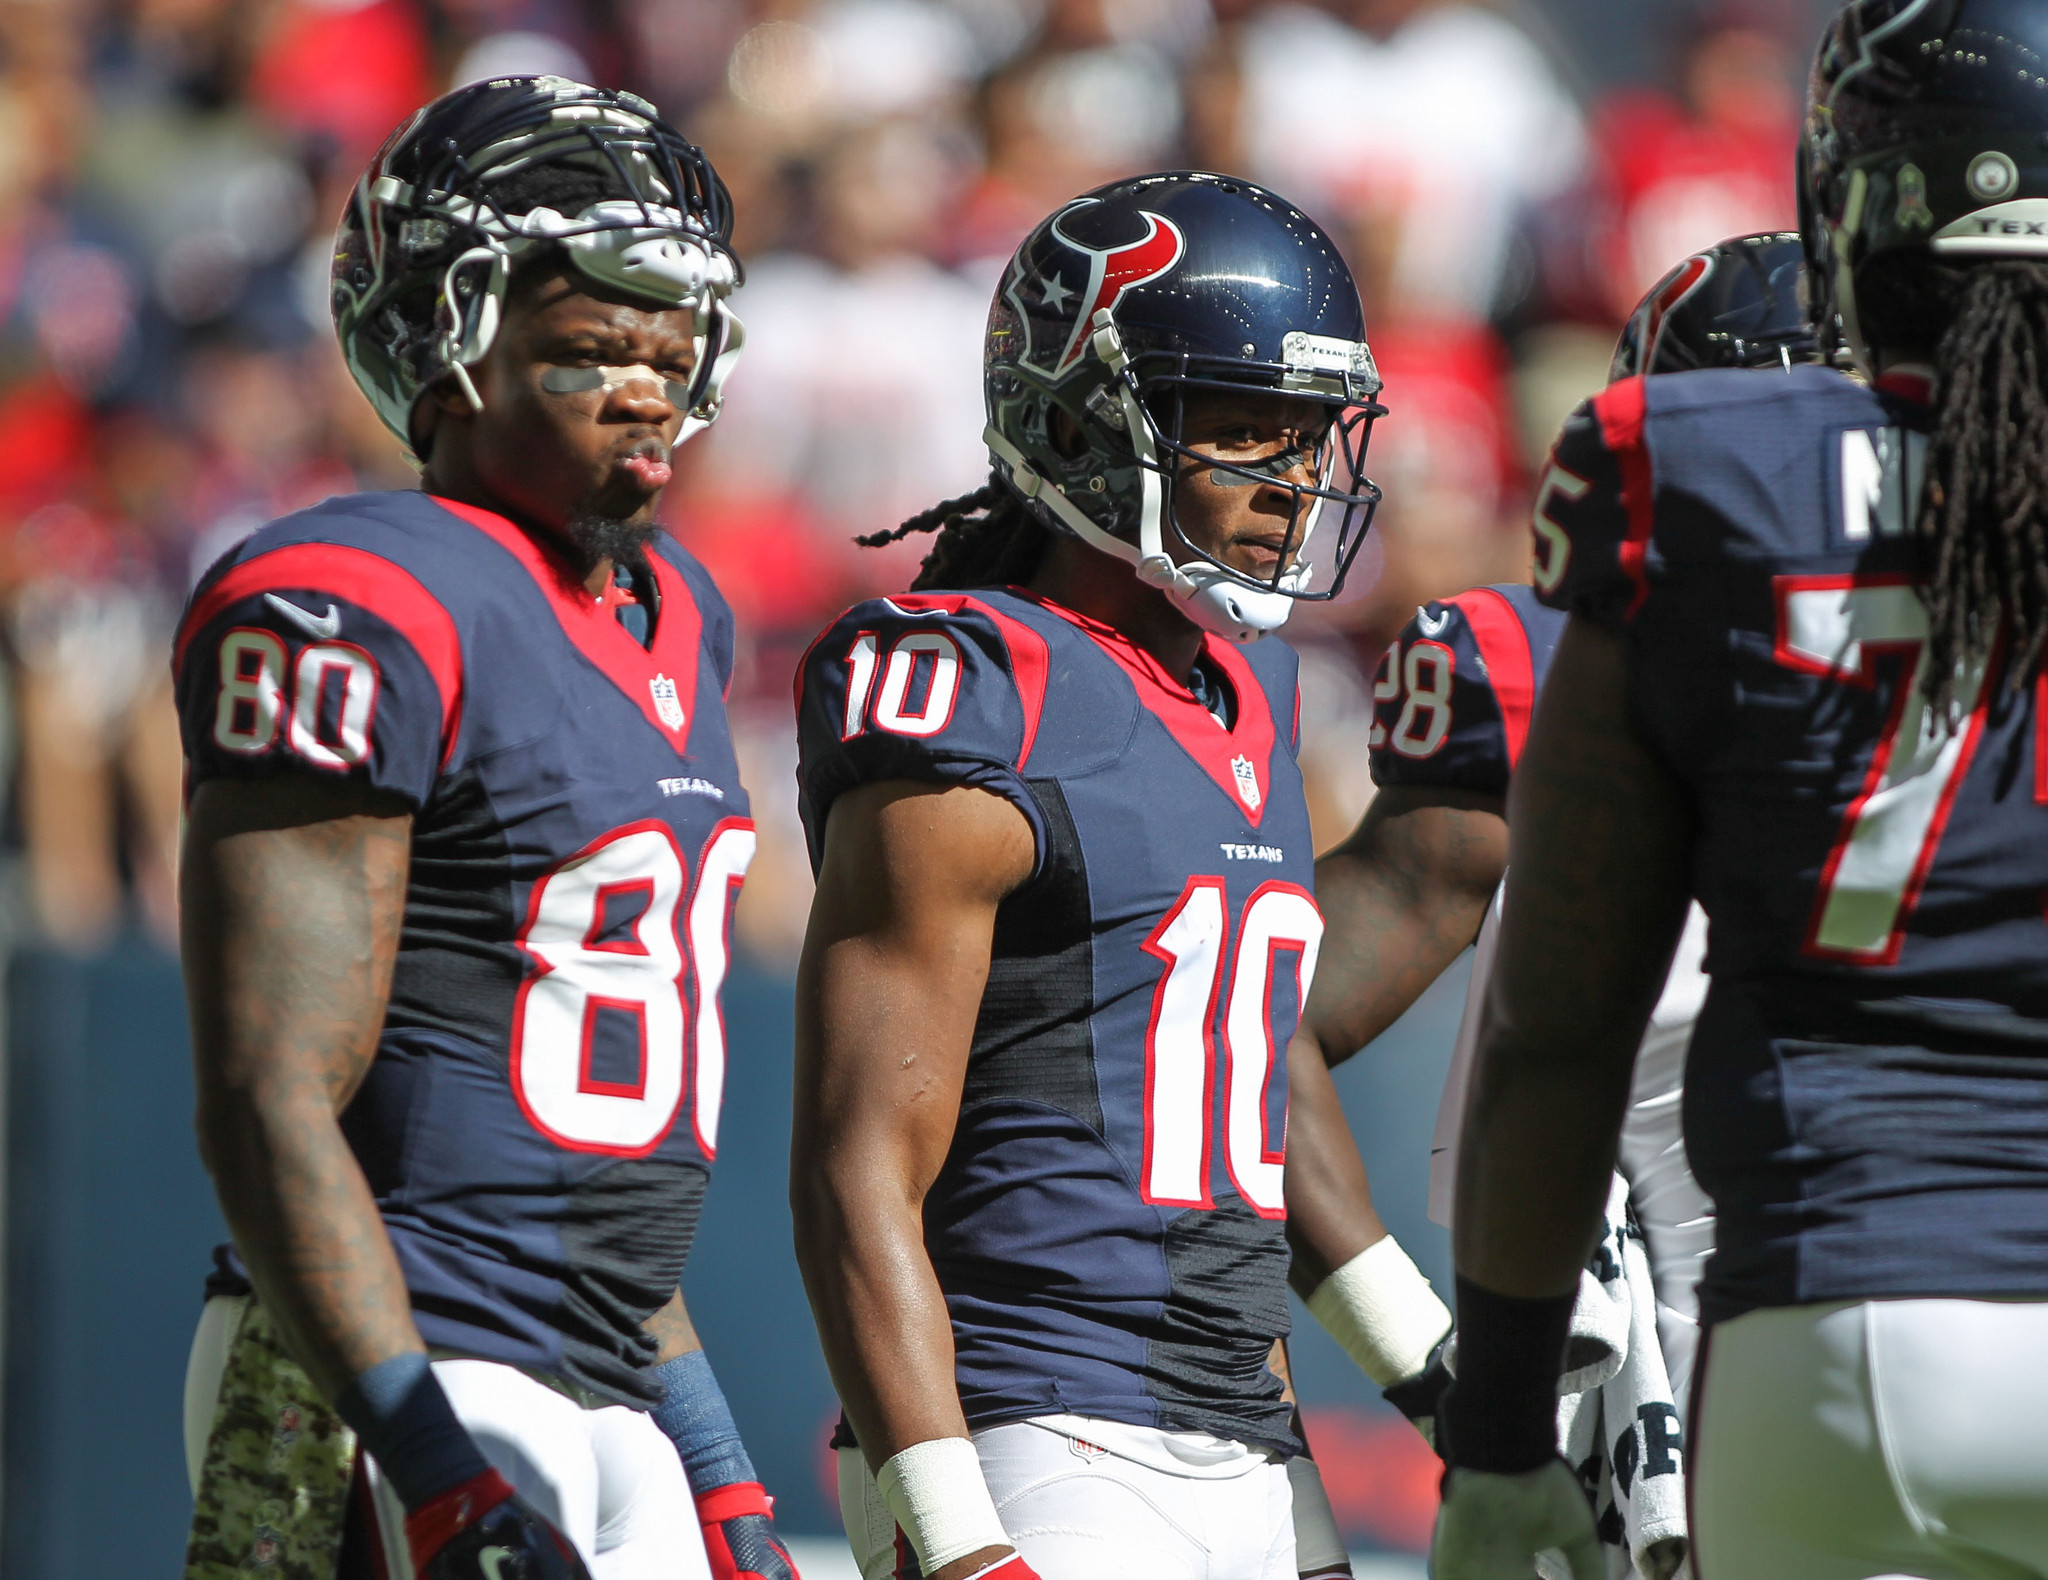 Baltimore Ravens to square off with Houston Texans talented